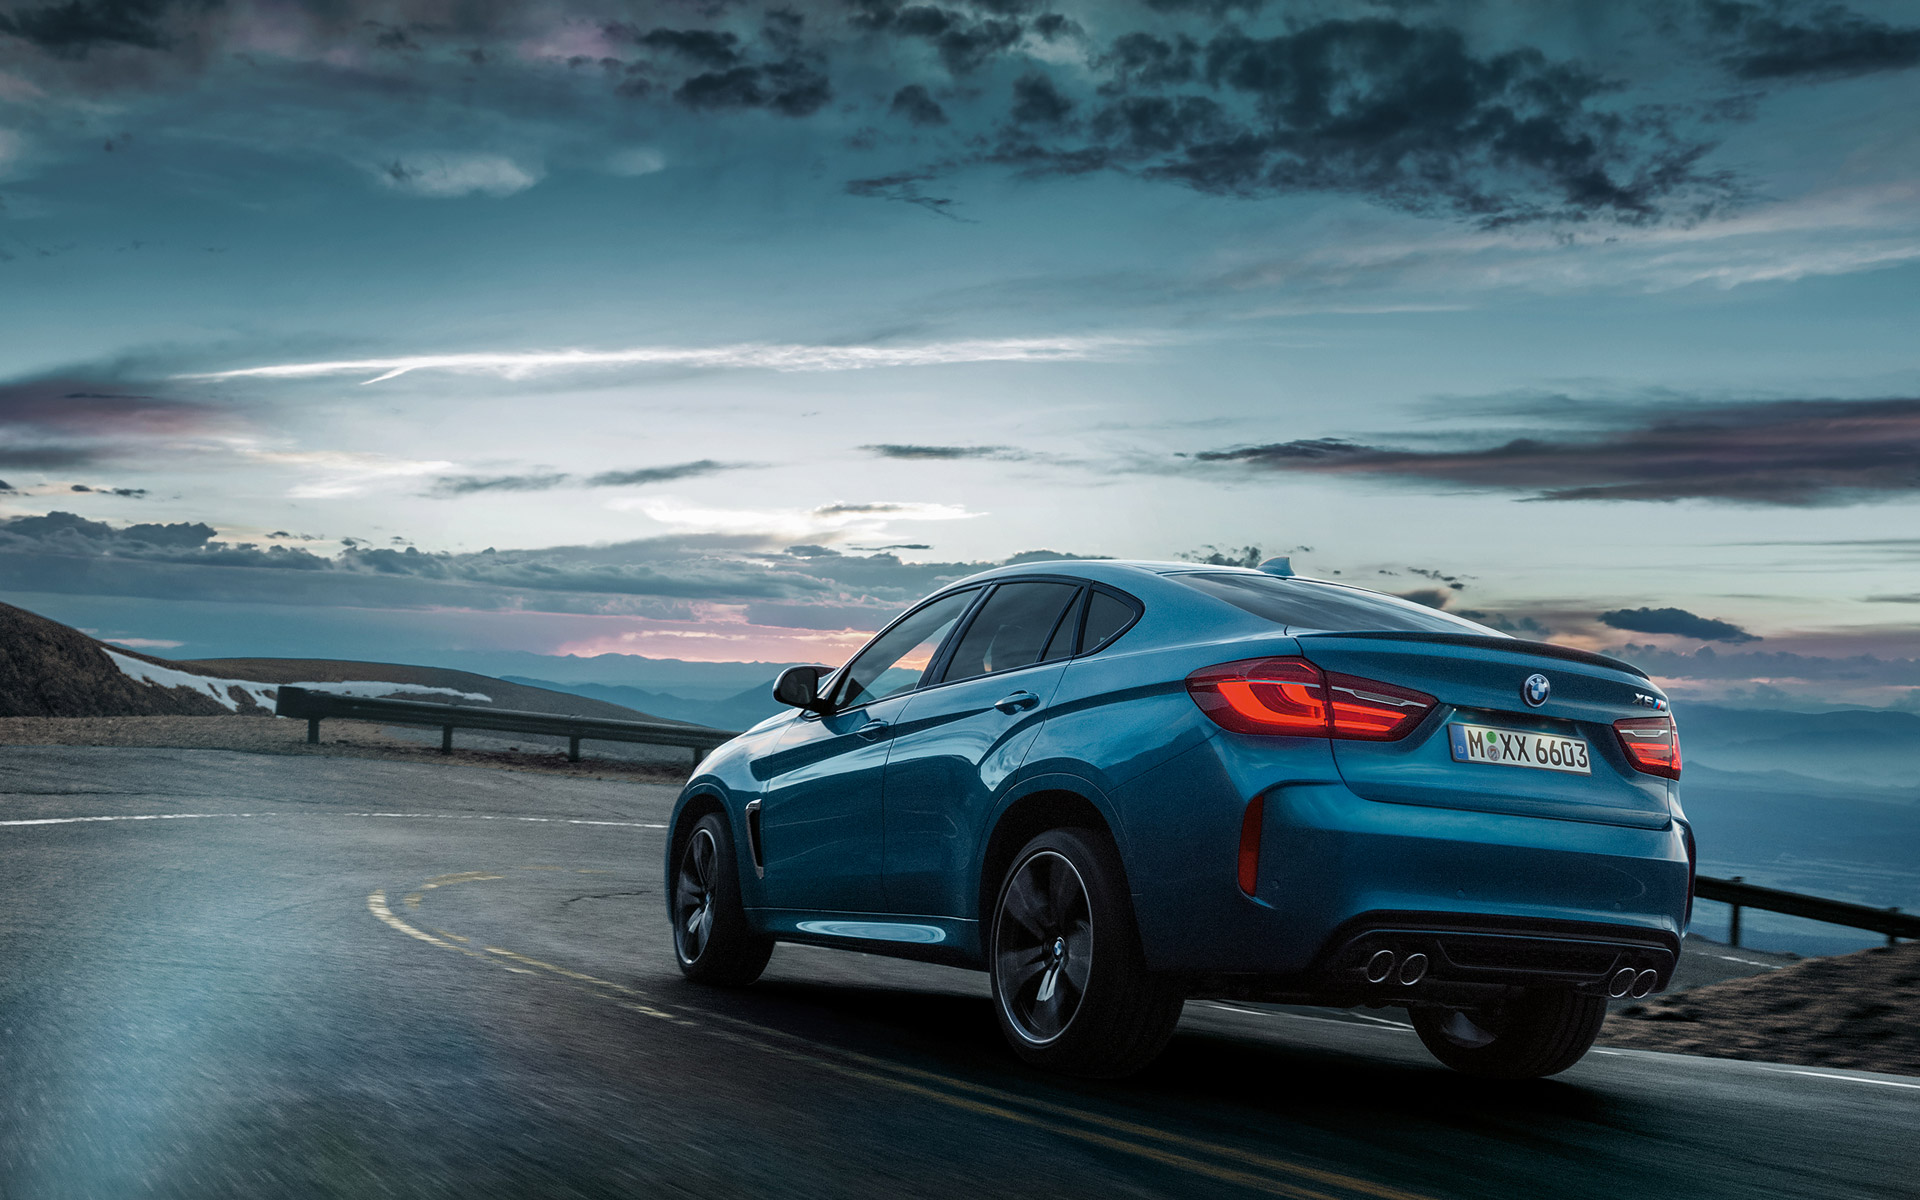 BMW X6 M Rear View hill driving